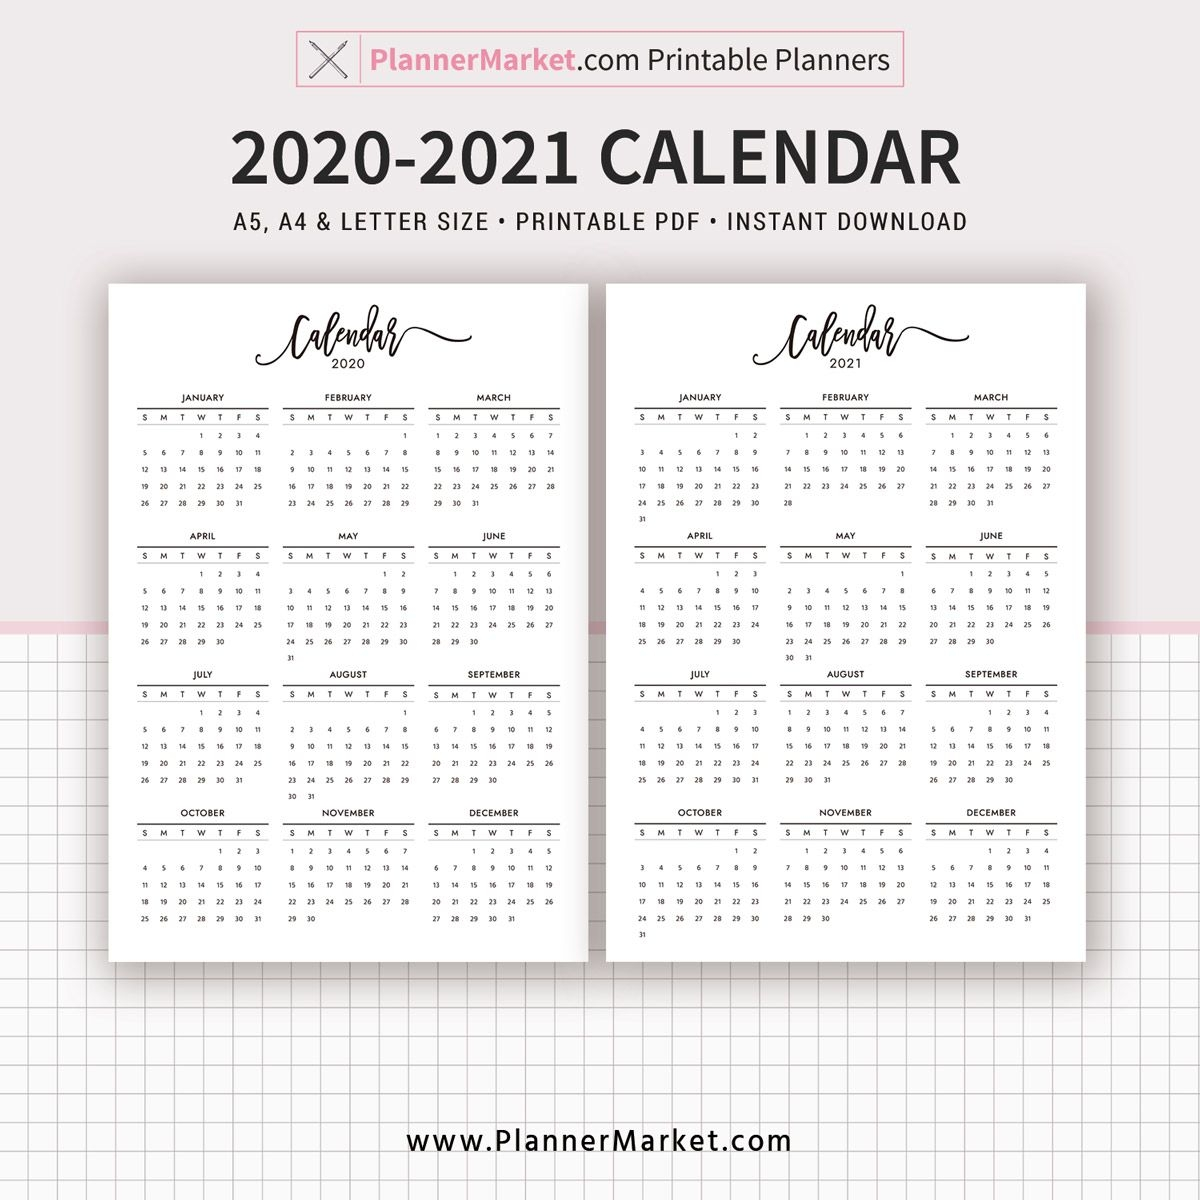 Take Year At A Glance Calendar For Printing 2020